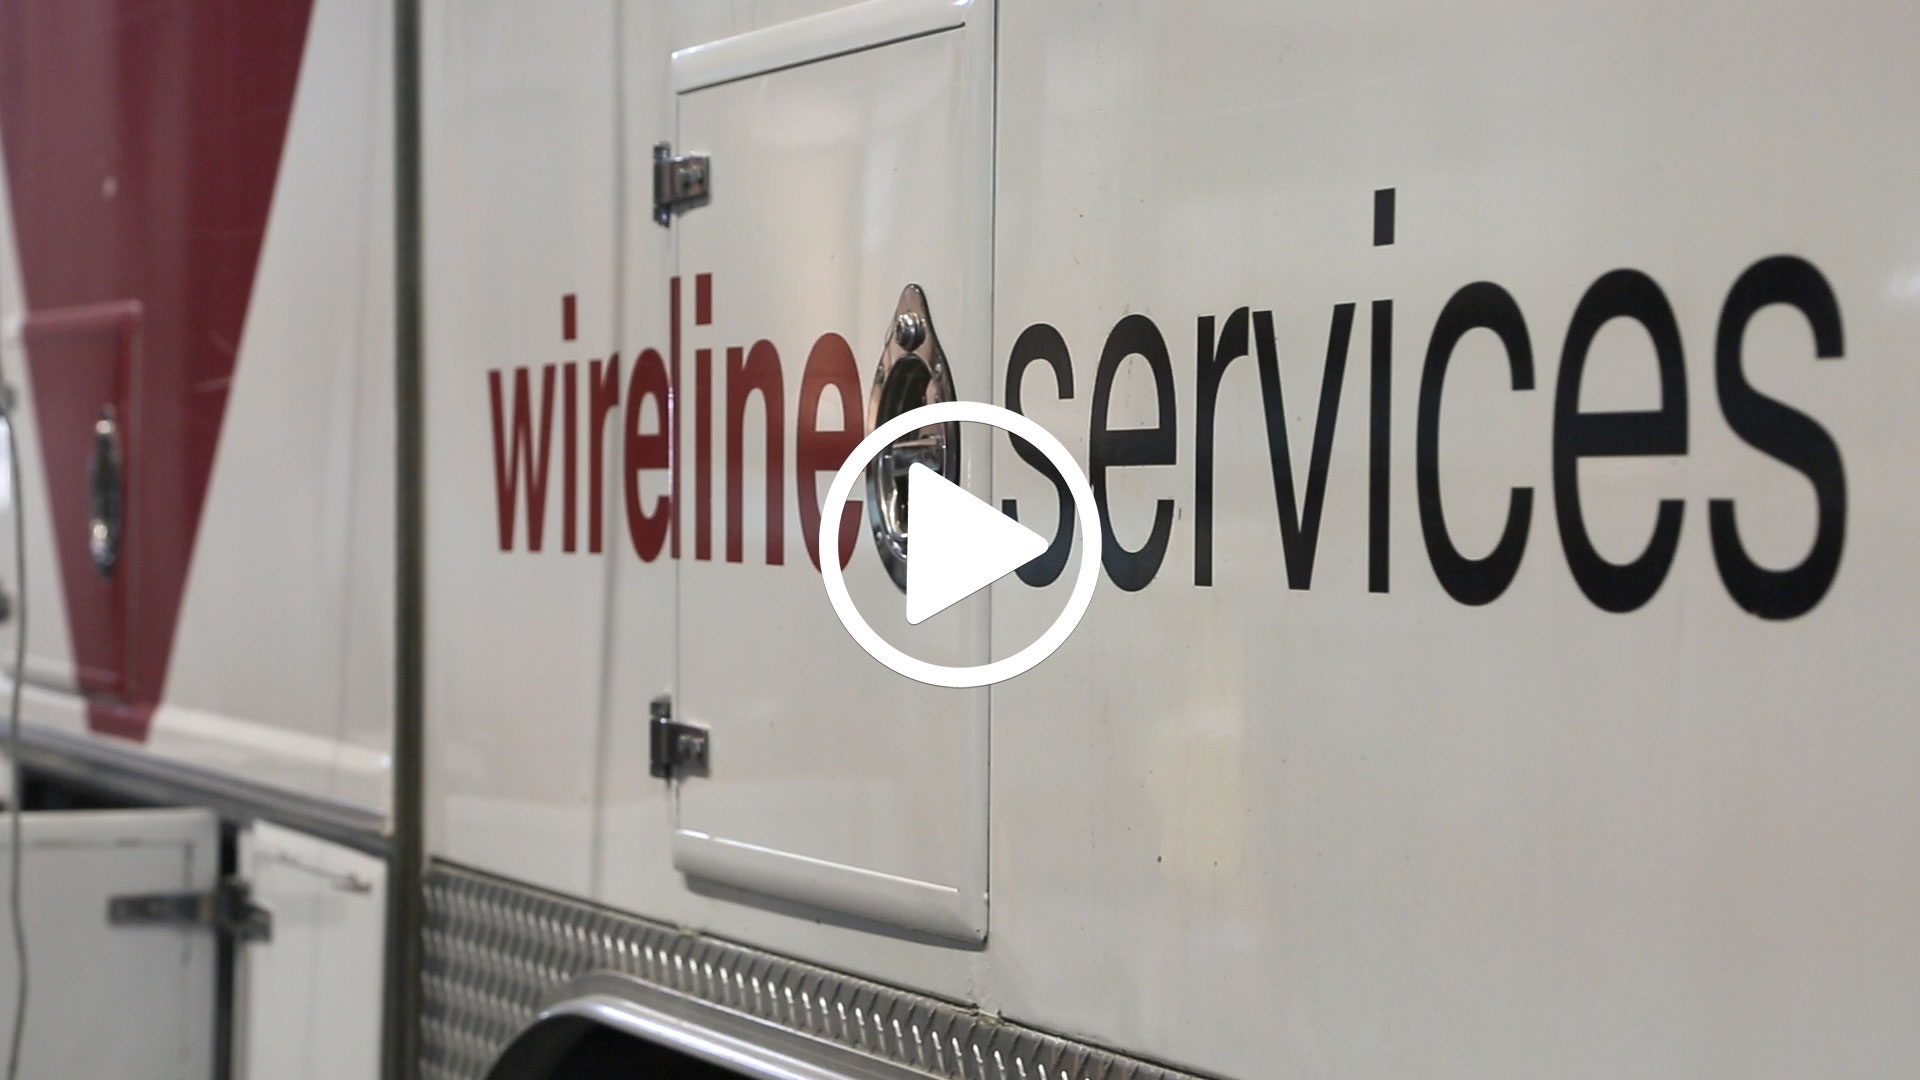 Watch our careers video for available job opening Wireline Open Hole Field Operator in Oklahoma City, OK